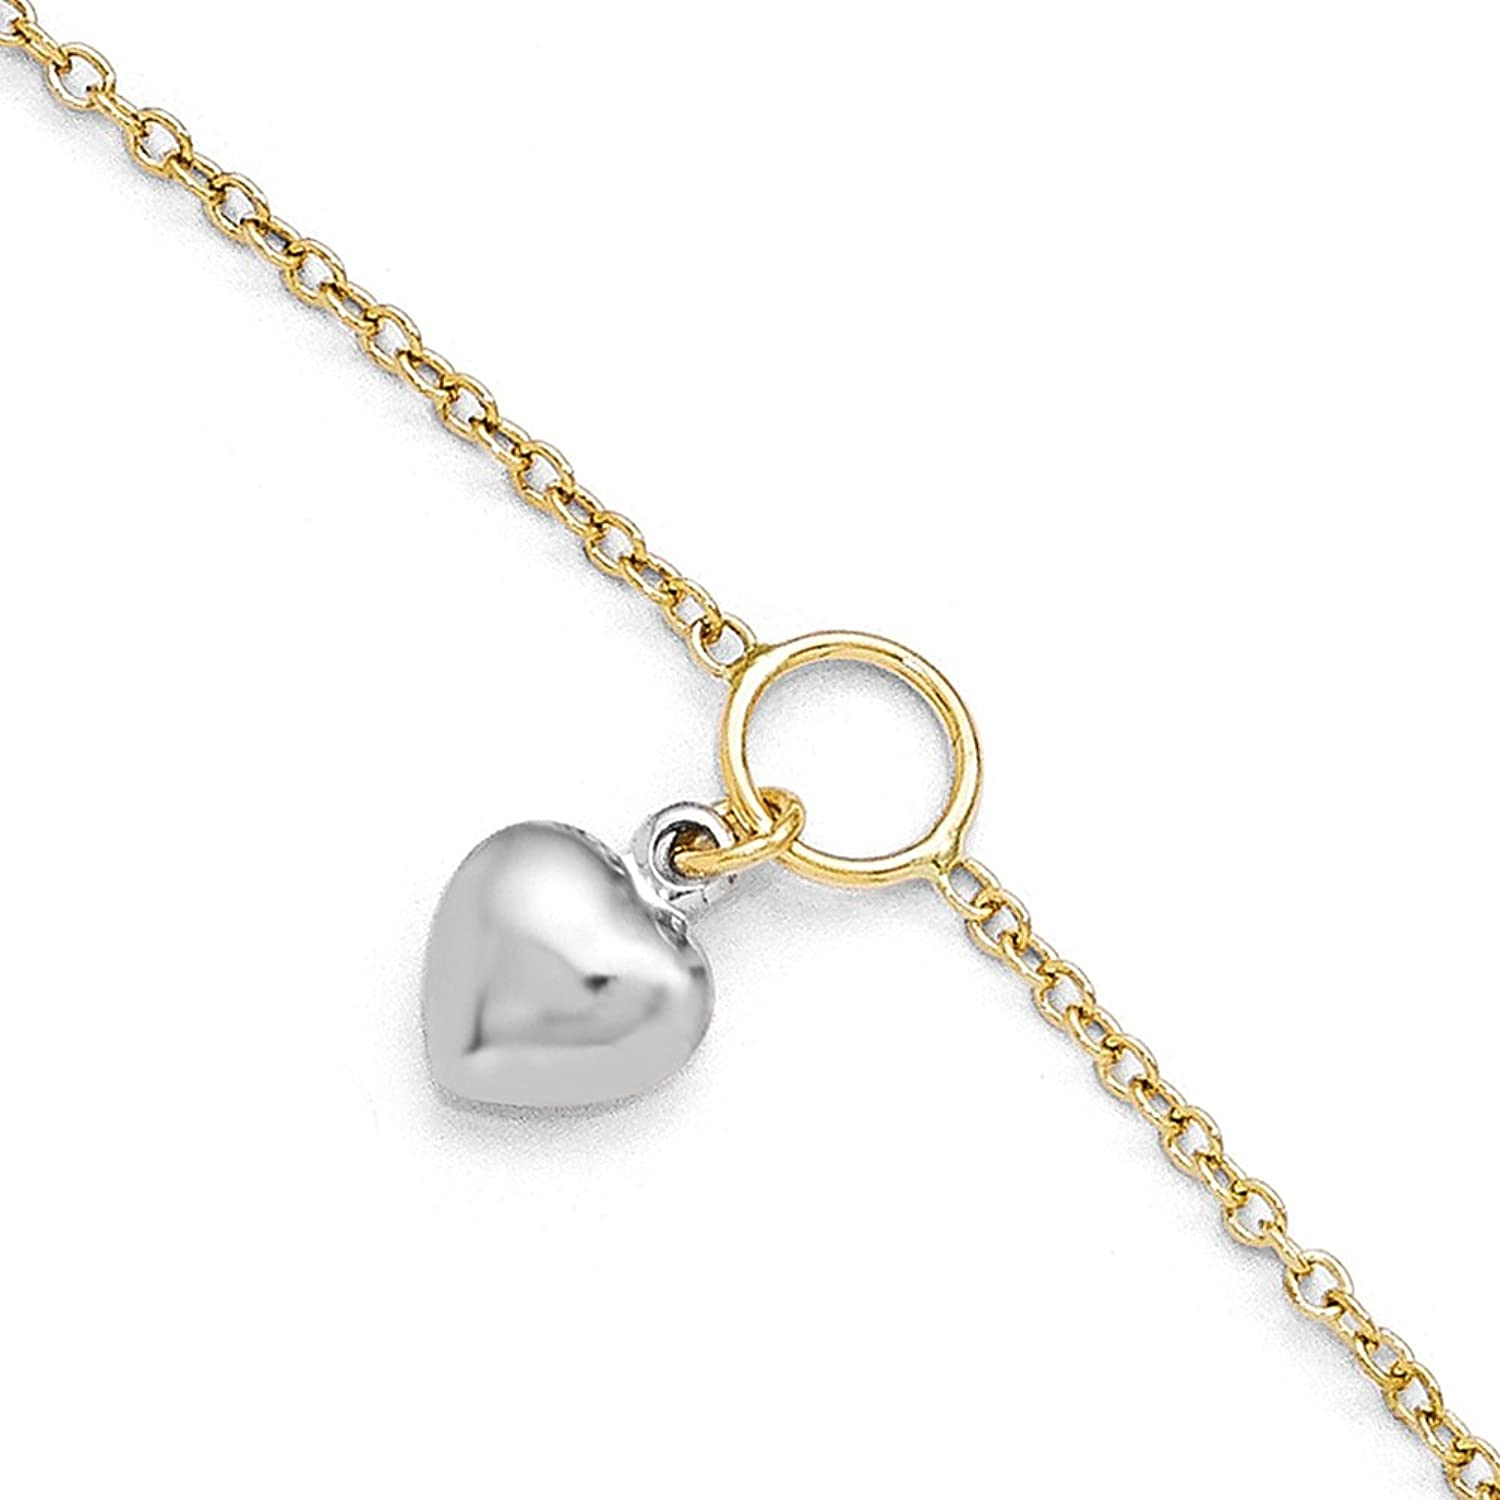 Italian 14k Two-Tone Gold Polished Heart Anklet with 1in ext - 10 inches